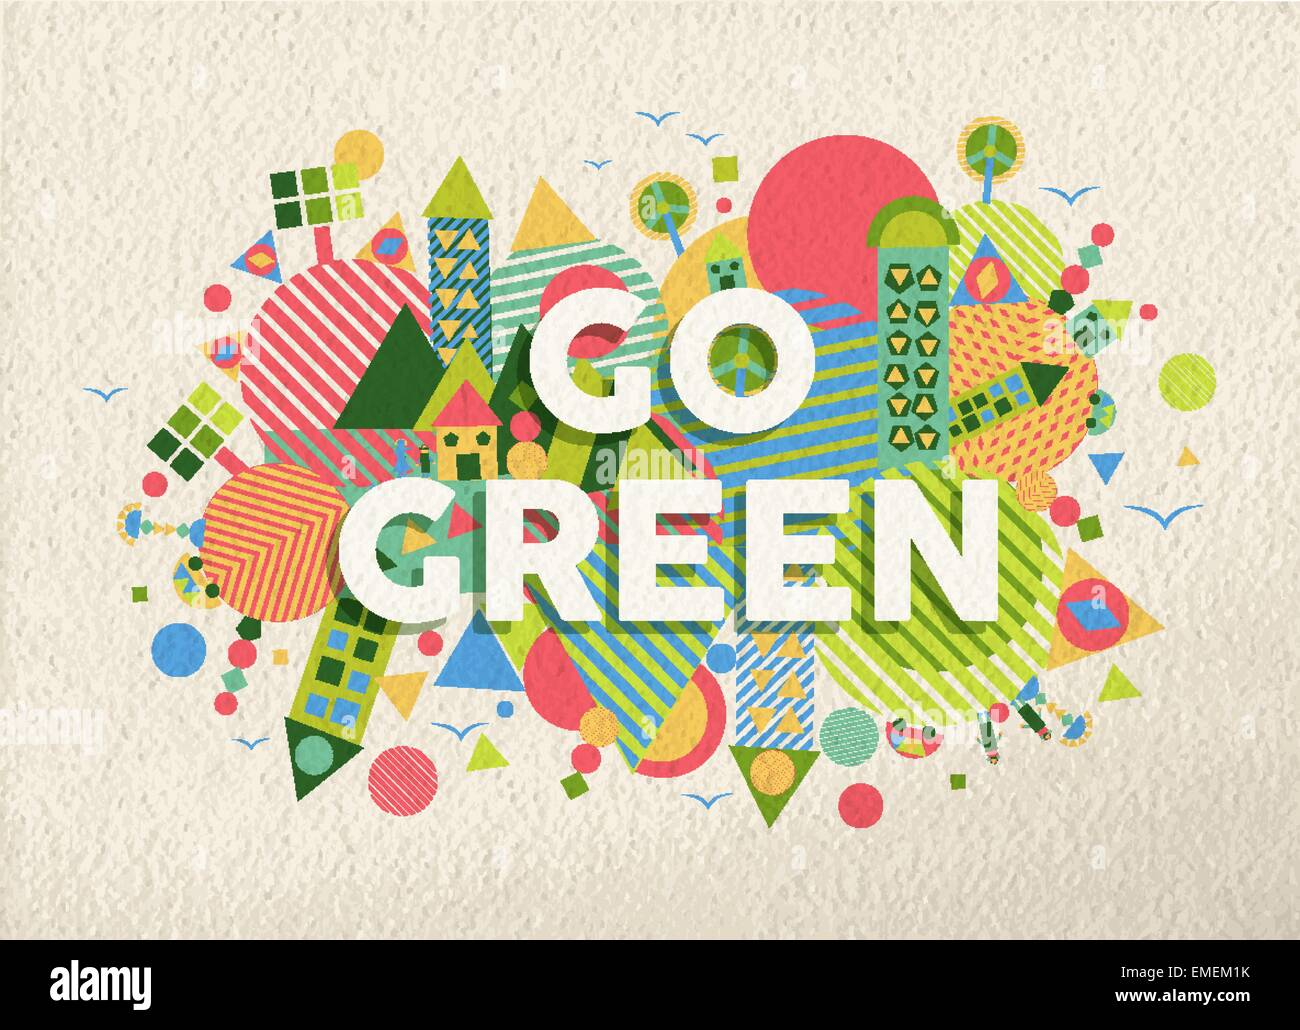 Poster design background - Go Green Quote Poster Design Background